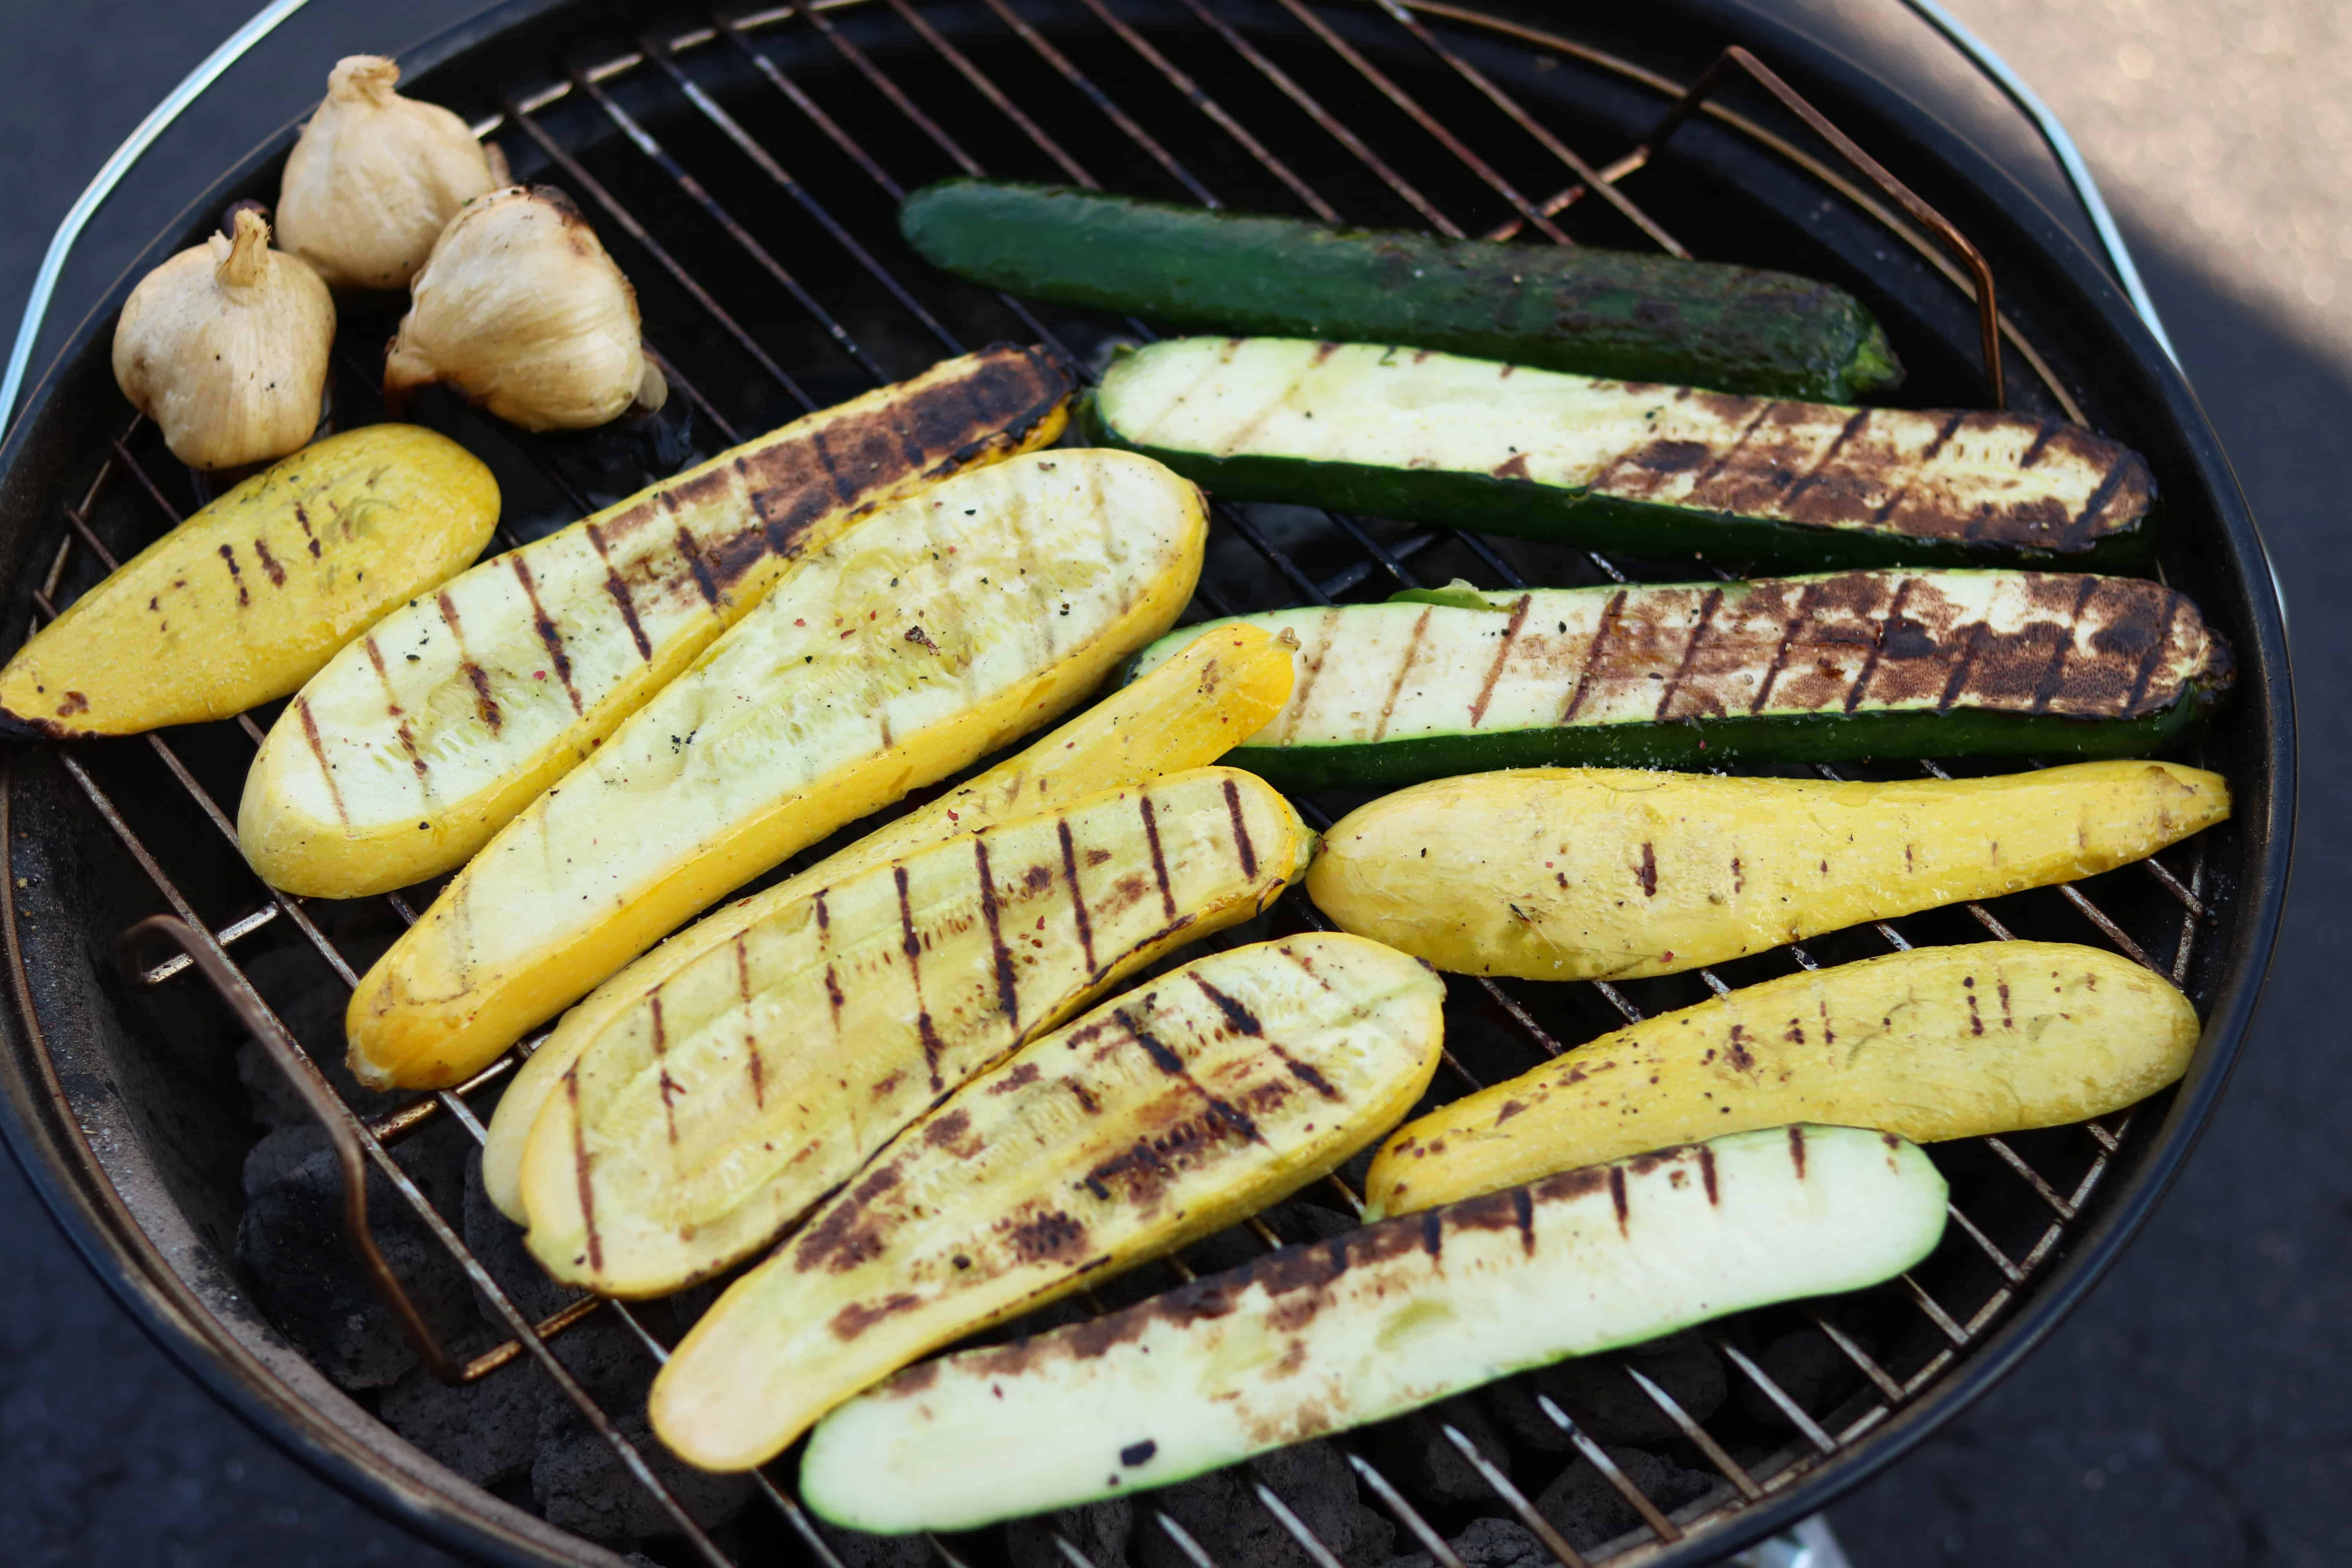 grilled veggies on the grill